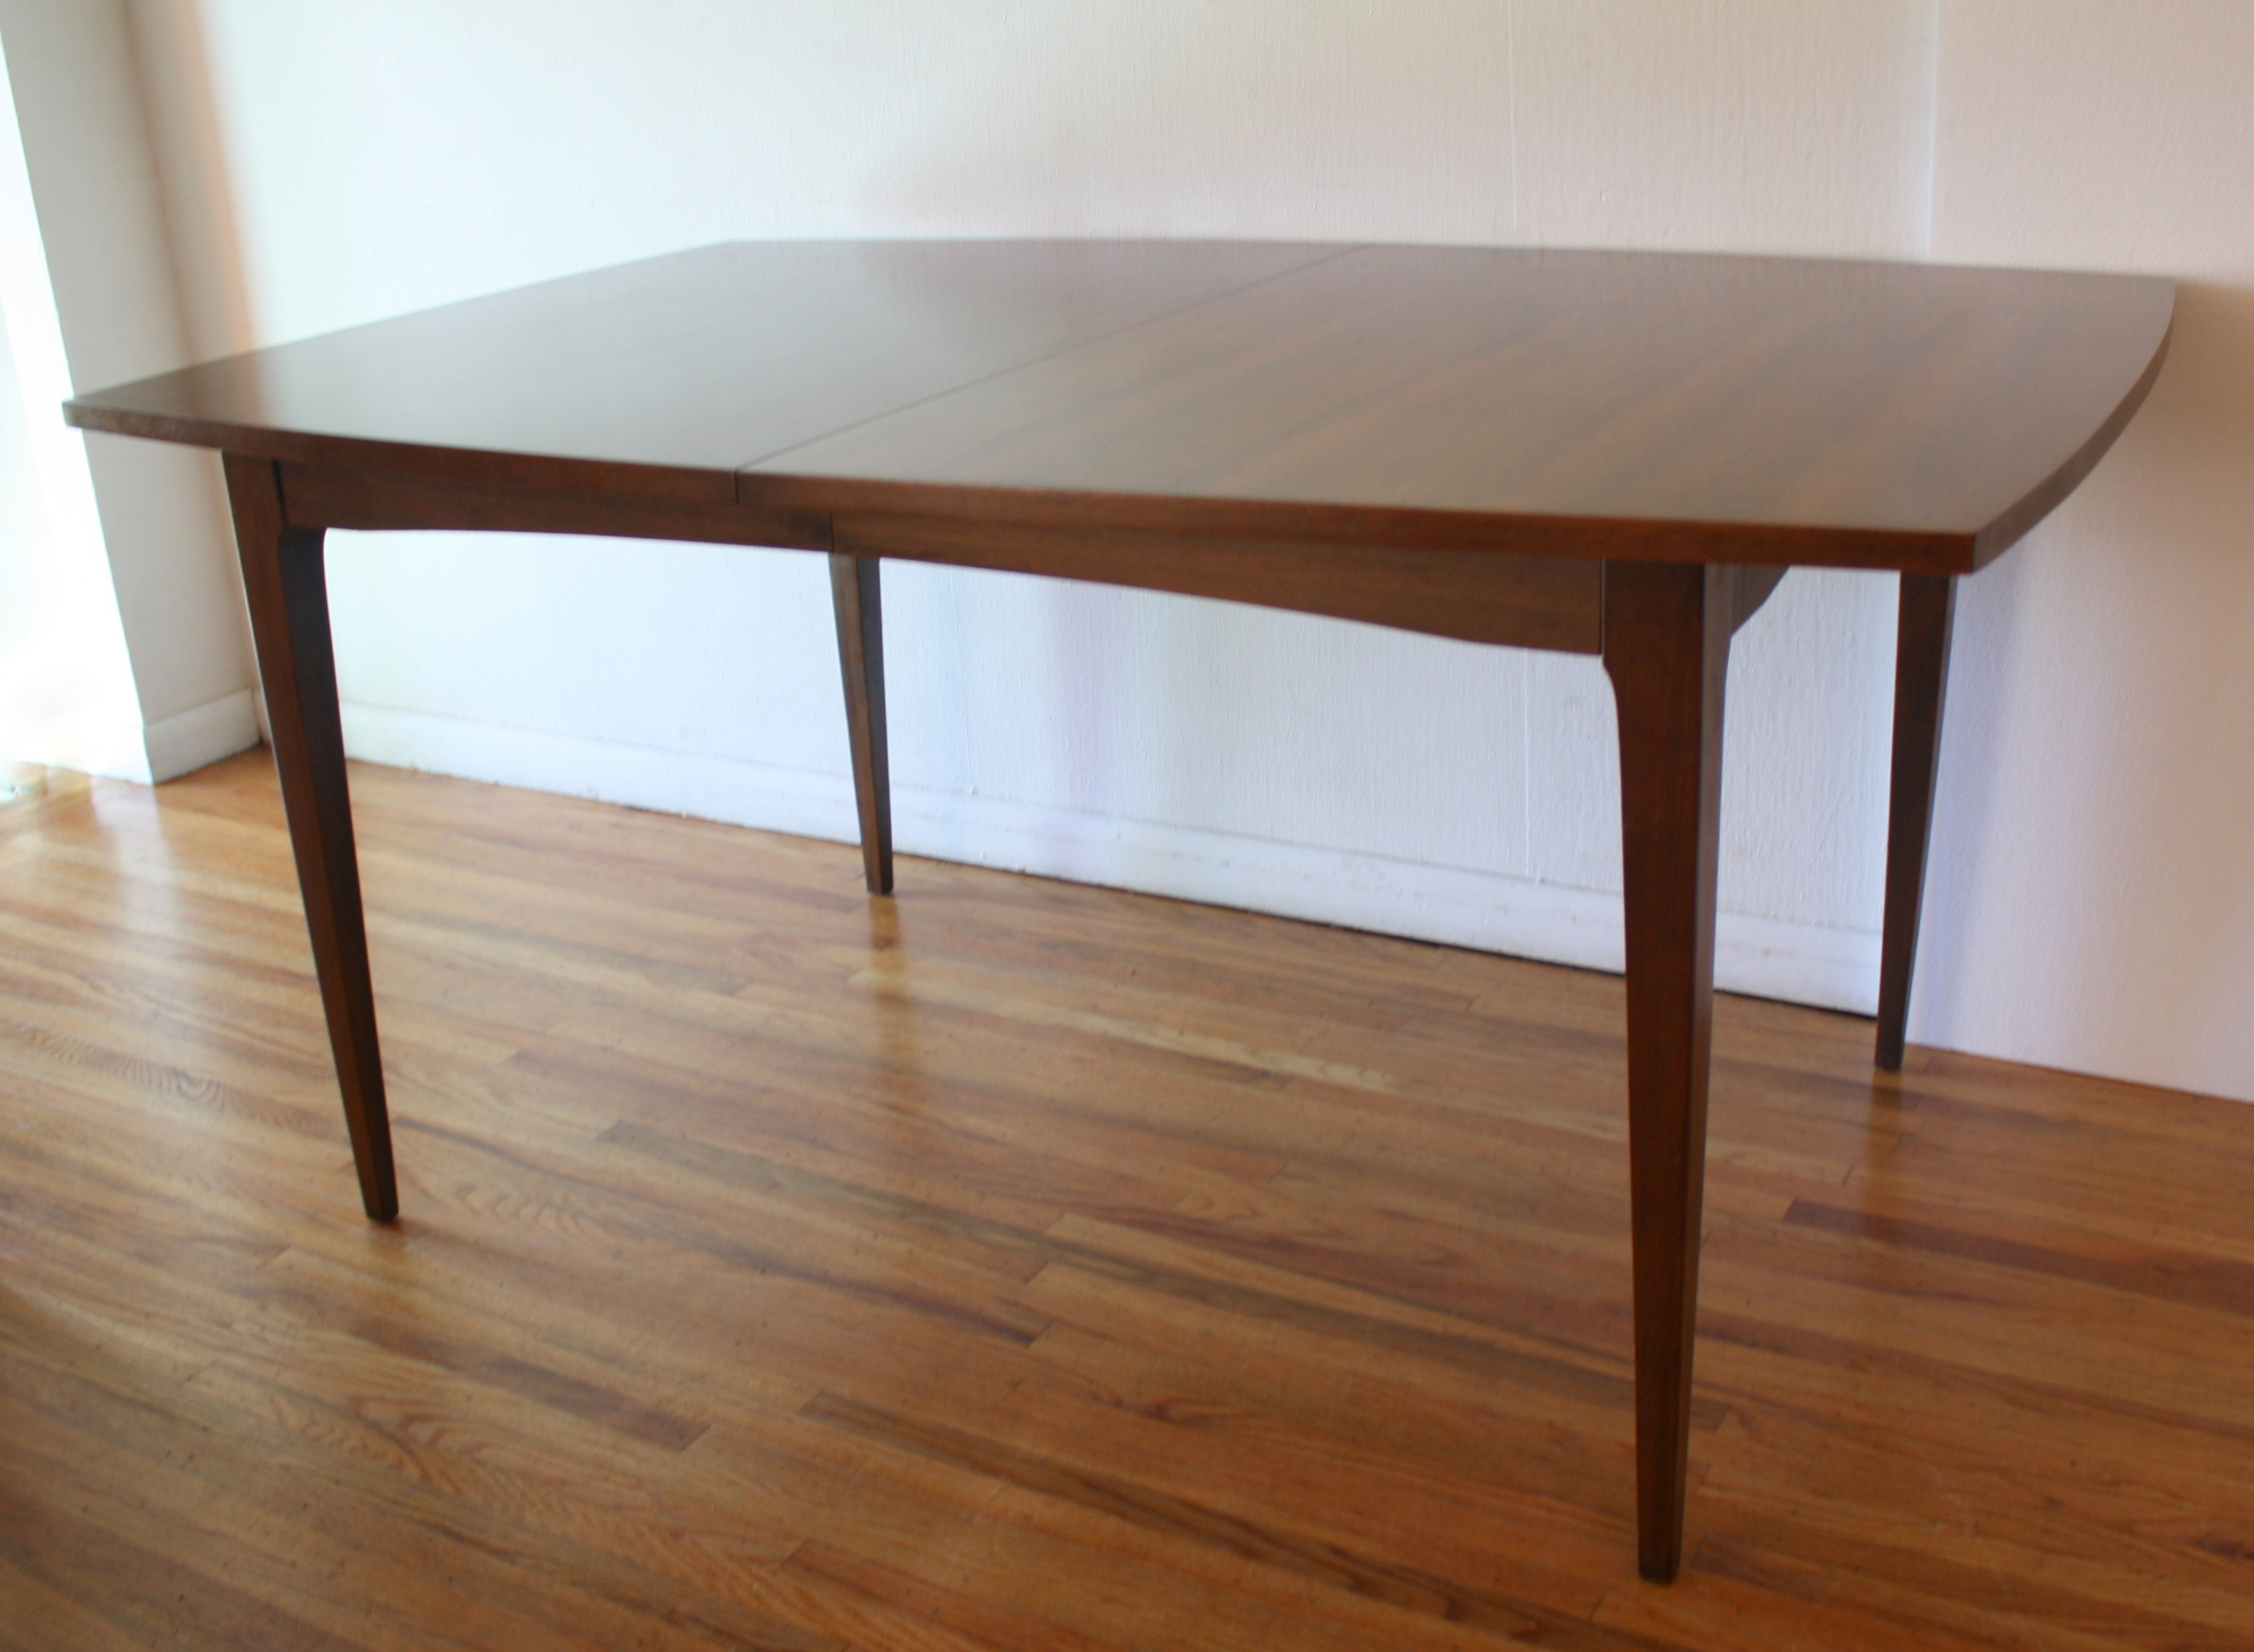 mcm-surfboard-dining-table-tapered-legs-2